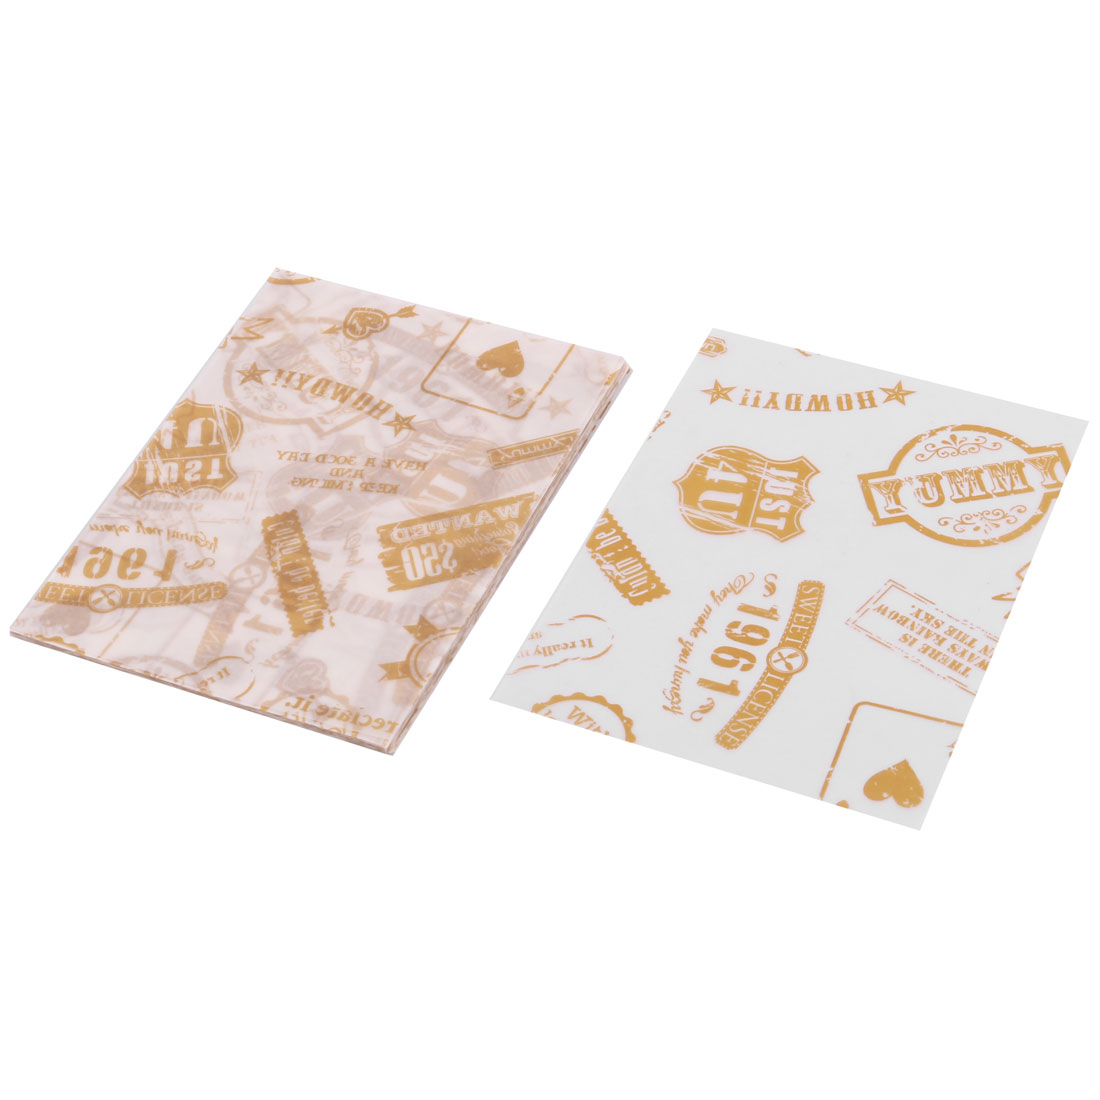 Store Cookies Sugar Chocolate Holder DIY Packaging Wrapping Paper 100 Pcs